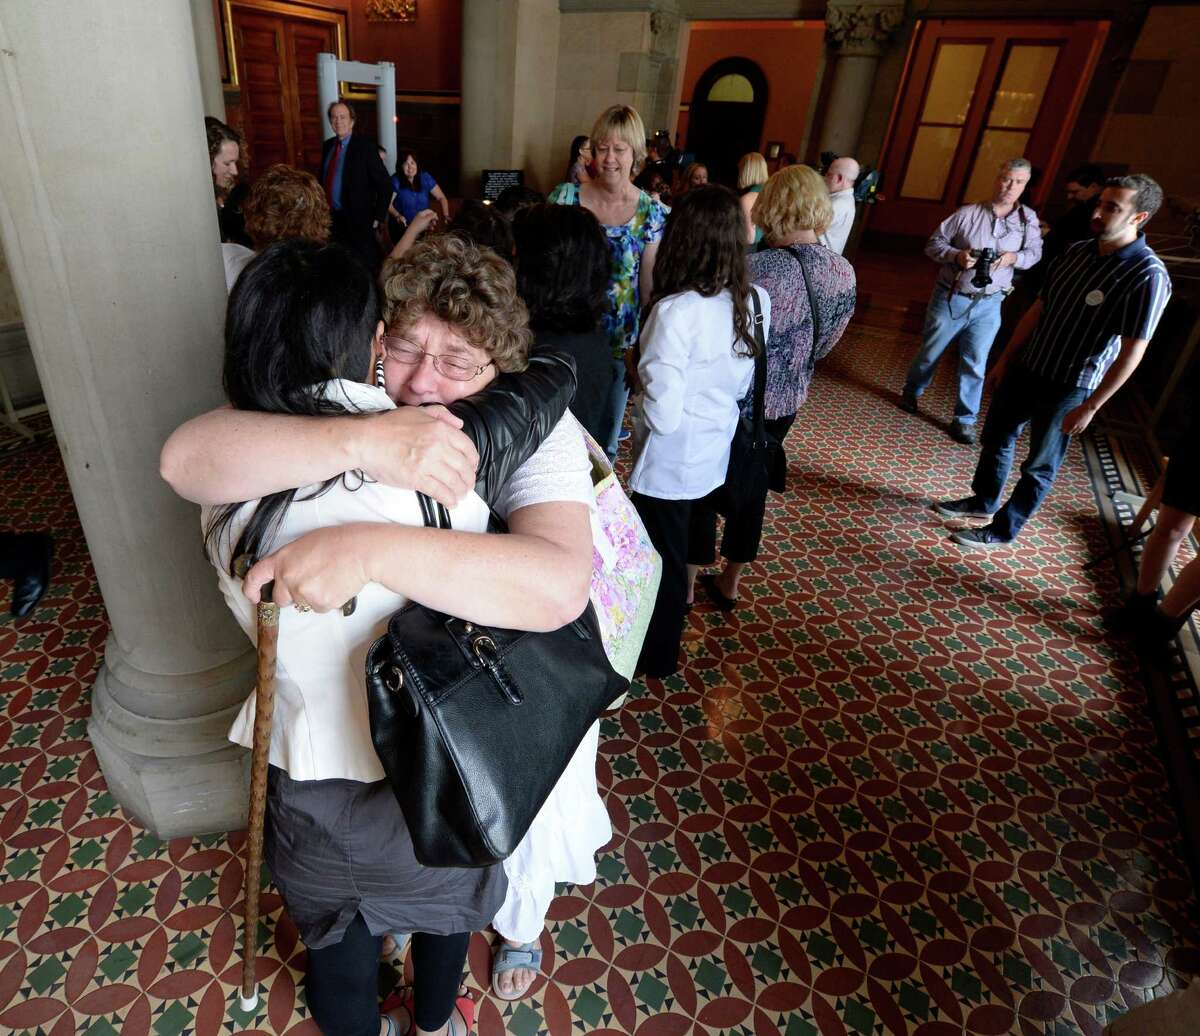 Medical marijuana advocates, Anna Saini of Brooklyn, left, and Caroline Vickery of Phoenix, N.Y., hug and share cry Friday afternoon, June 20, 2014, after the Medical Marijuana bill passed by the State Senate at the Capitol in Albany, N.Y. (Skip Dickstein / Times Union)